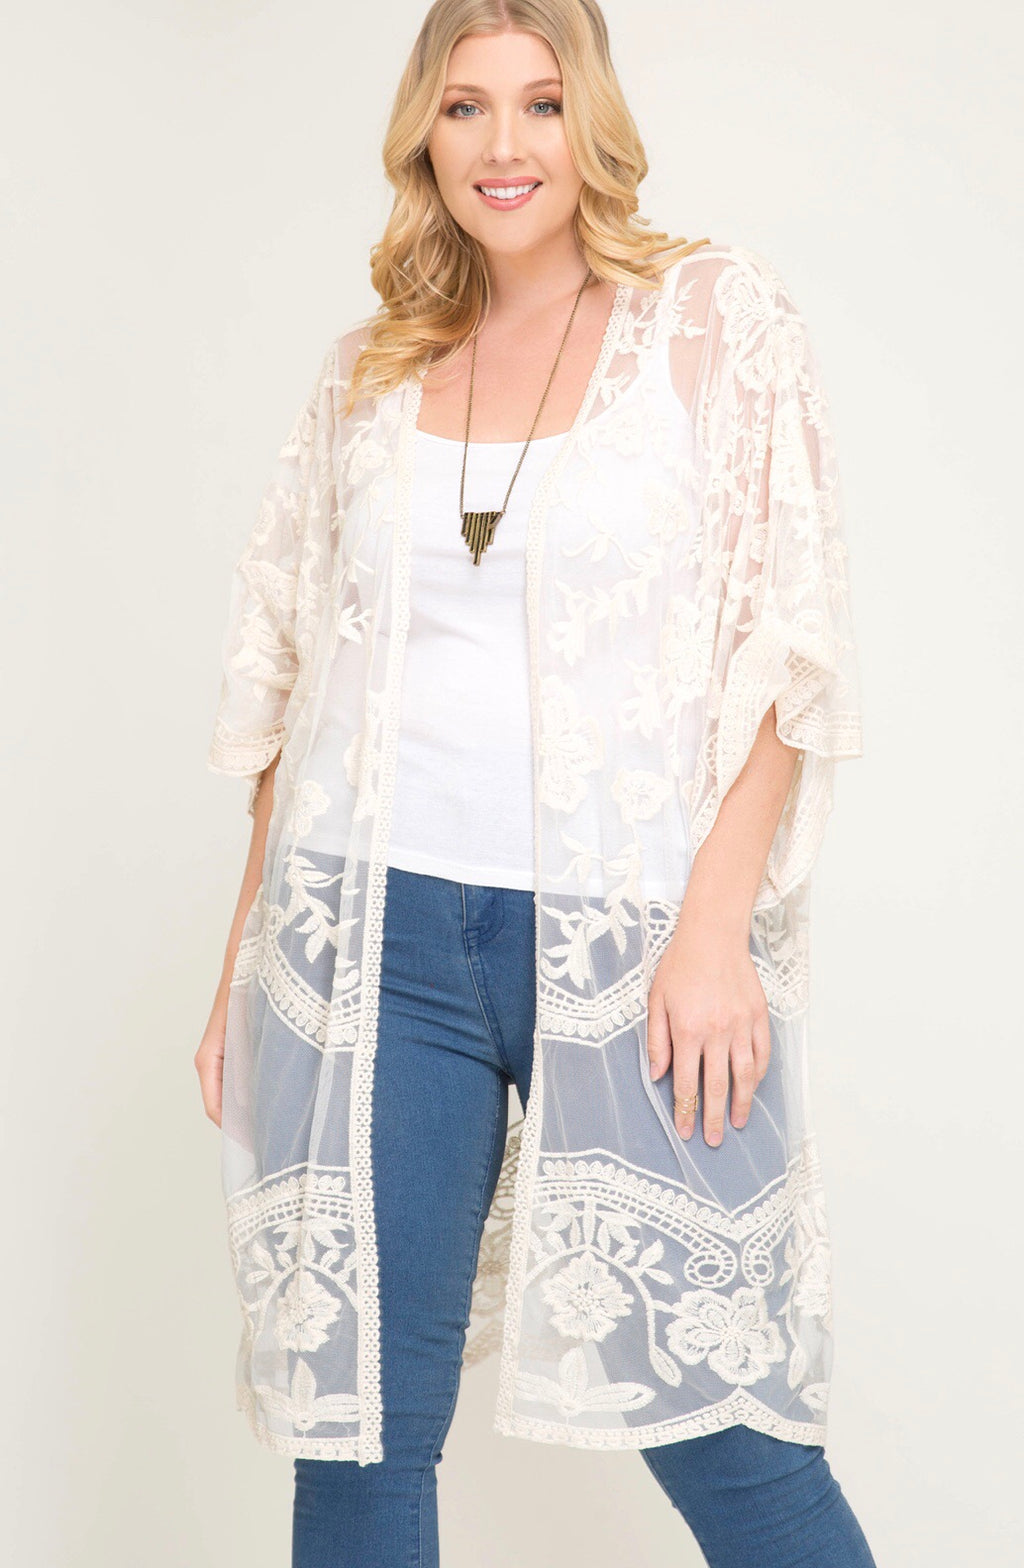 Cream & Sugar Please - Midi Duster Cardigan - Erin Edit Shop